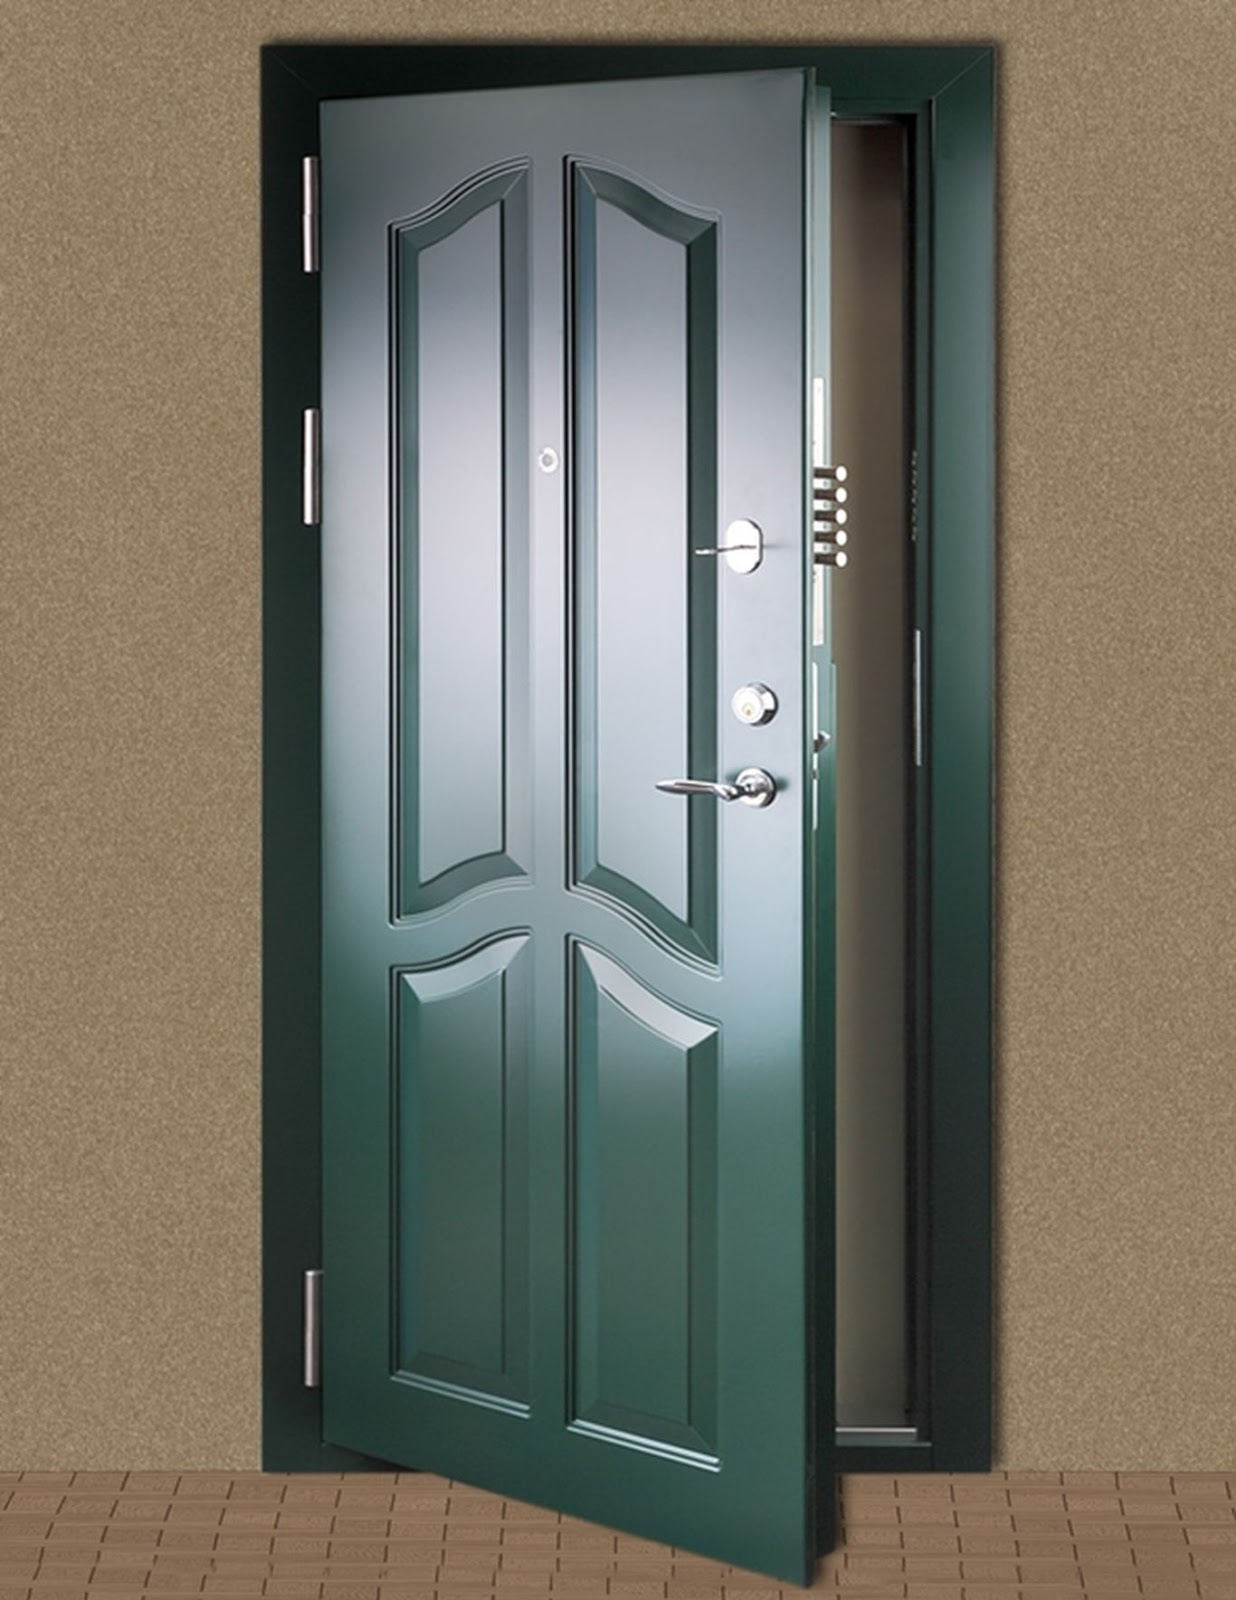 Door to the world: Entrance doors and home security